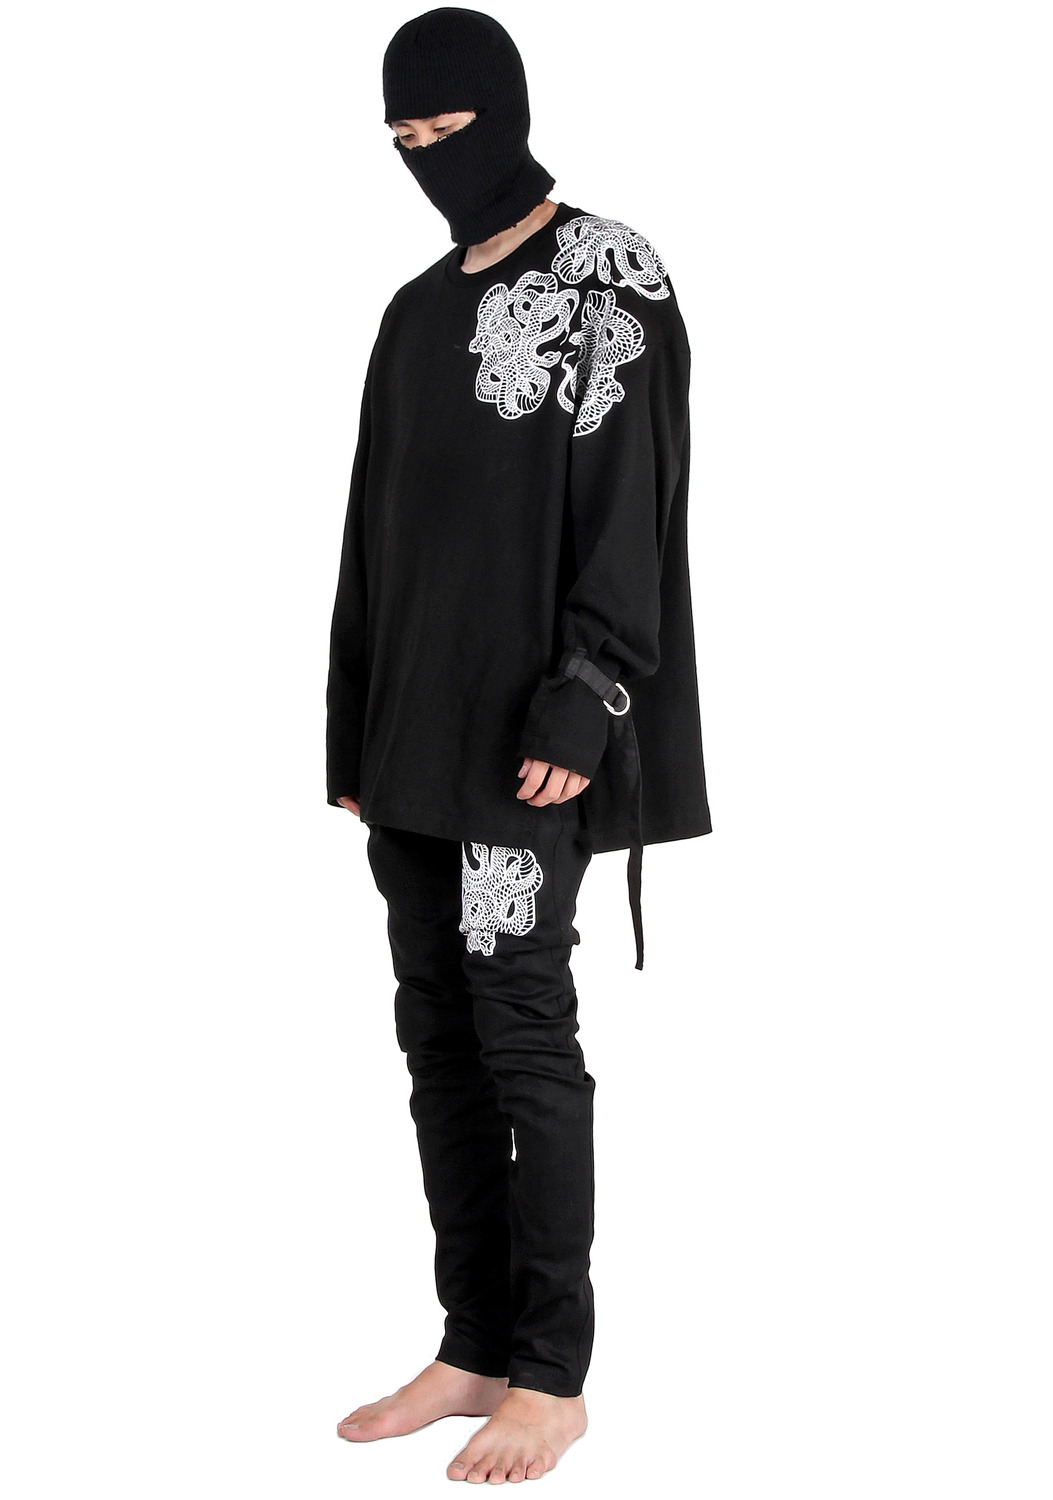 SNAKE SHOULDER TATTO LONG SLEEVE T-SHIRTS